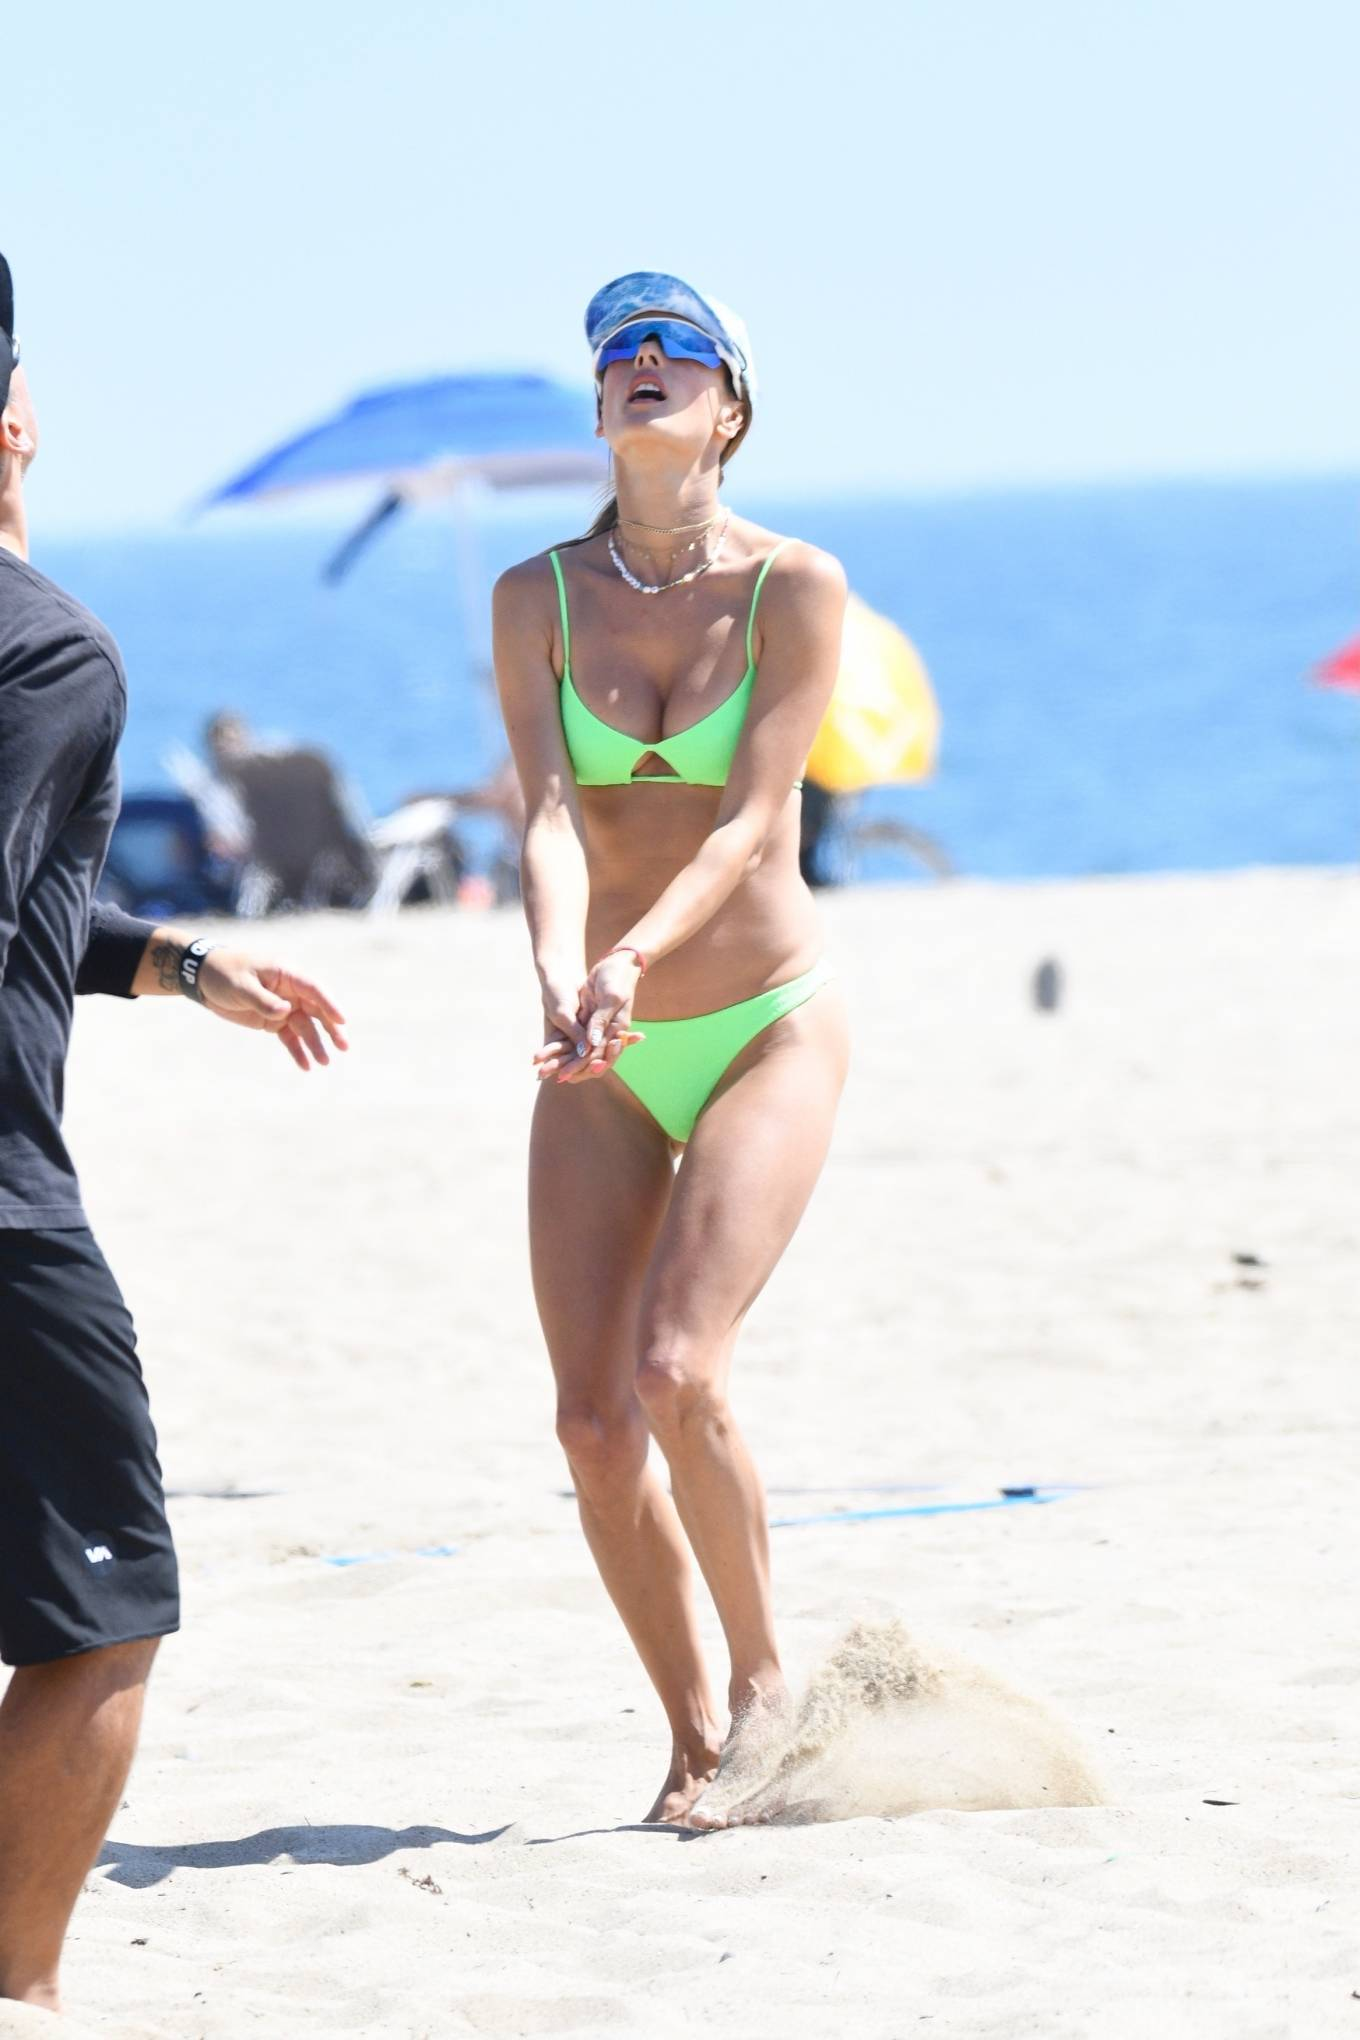 Alessandra Ambrosio wearing a skimpy light green bikini top with thin shoulder strap, cut outs, a scoop neck and spaghetti straps